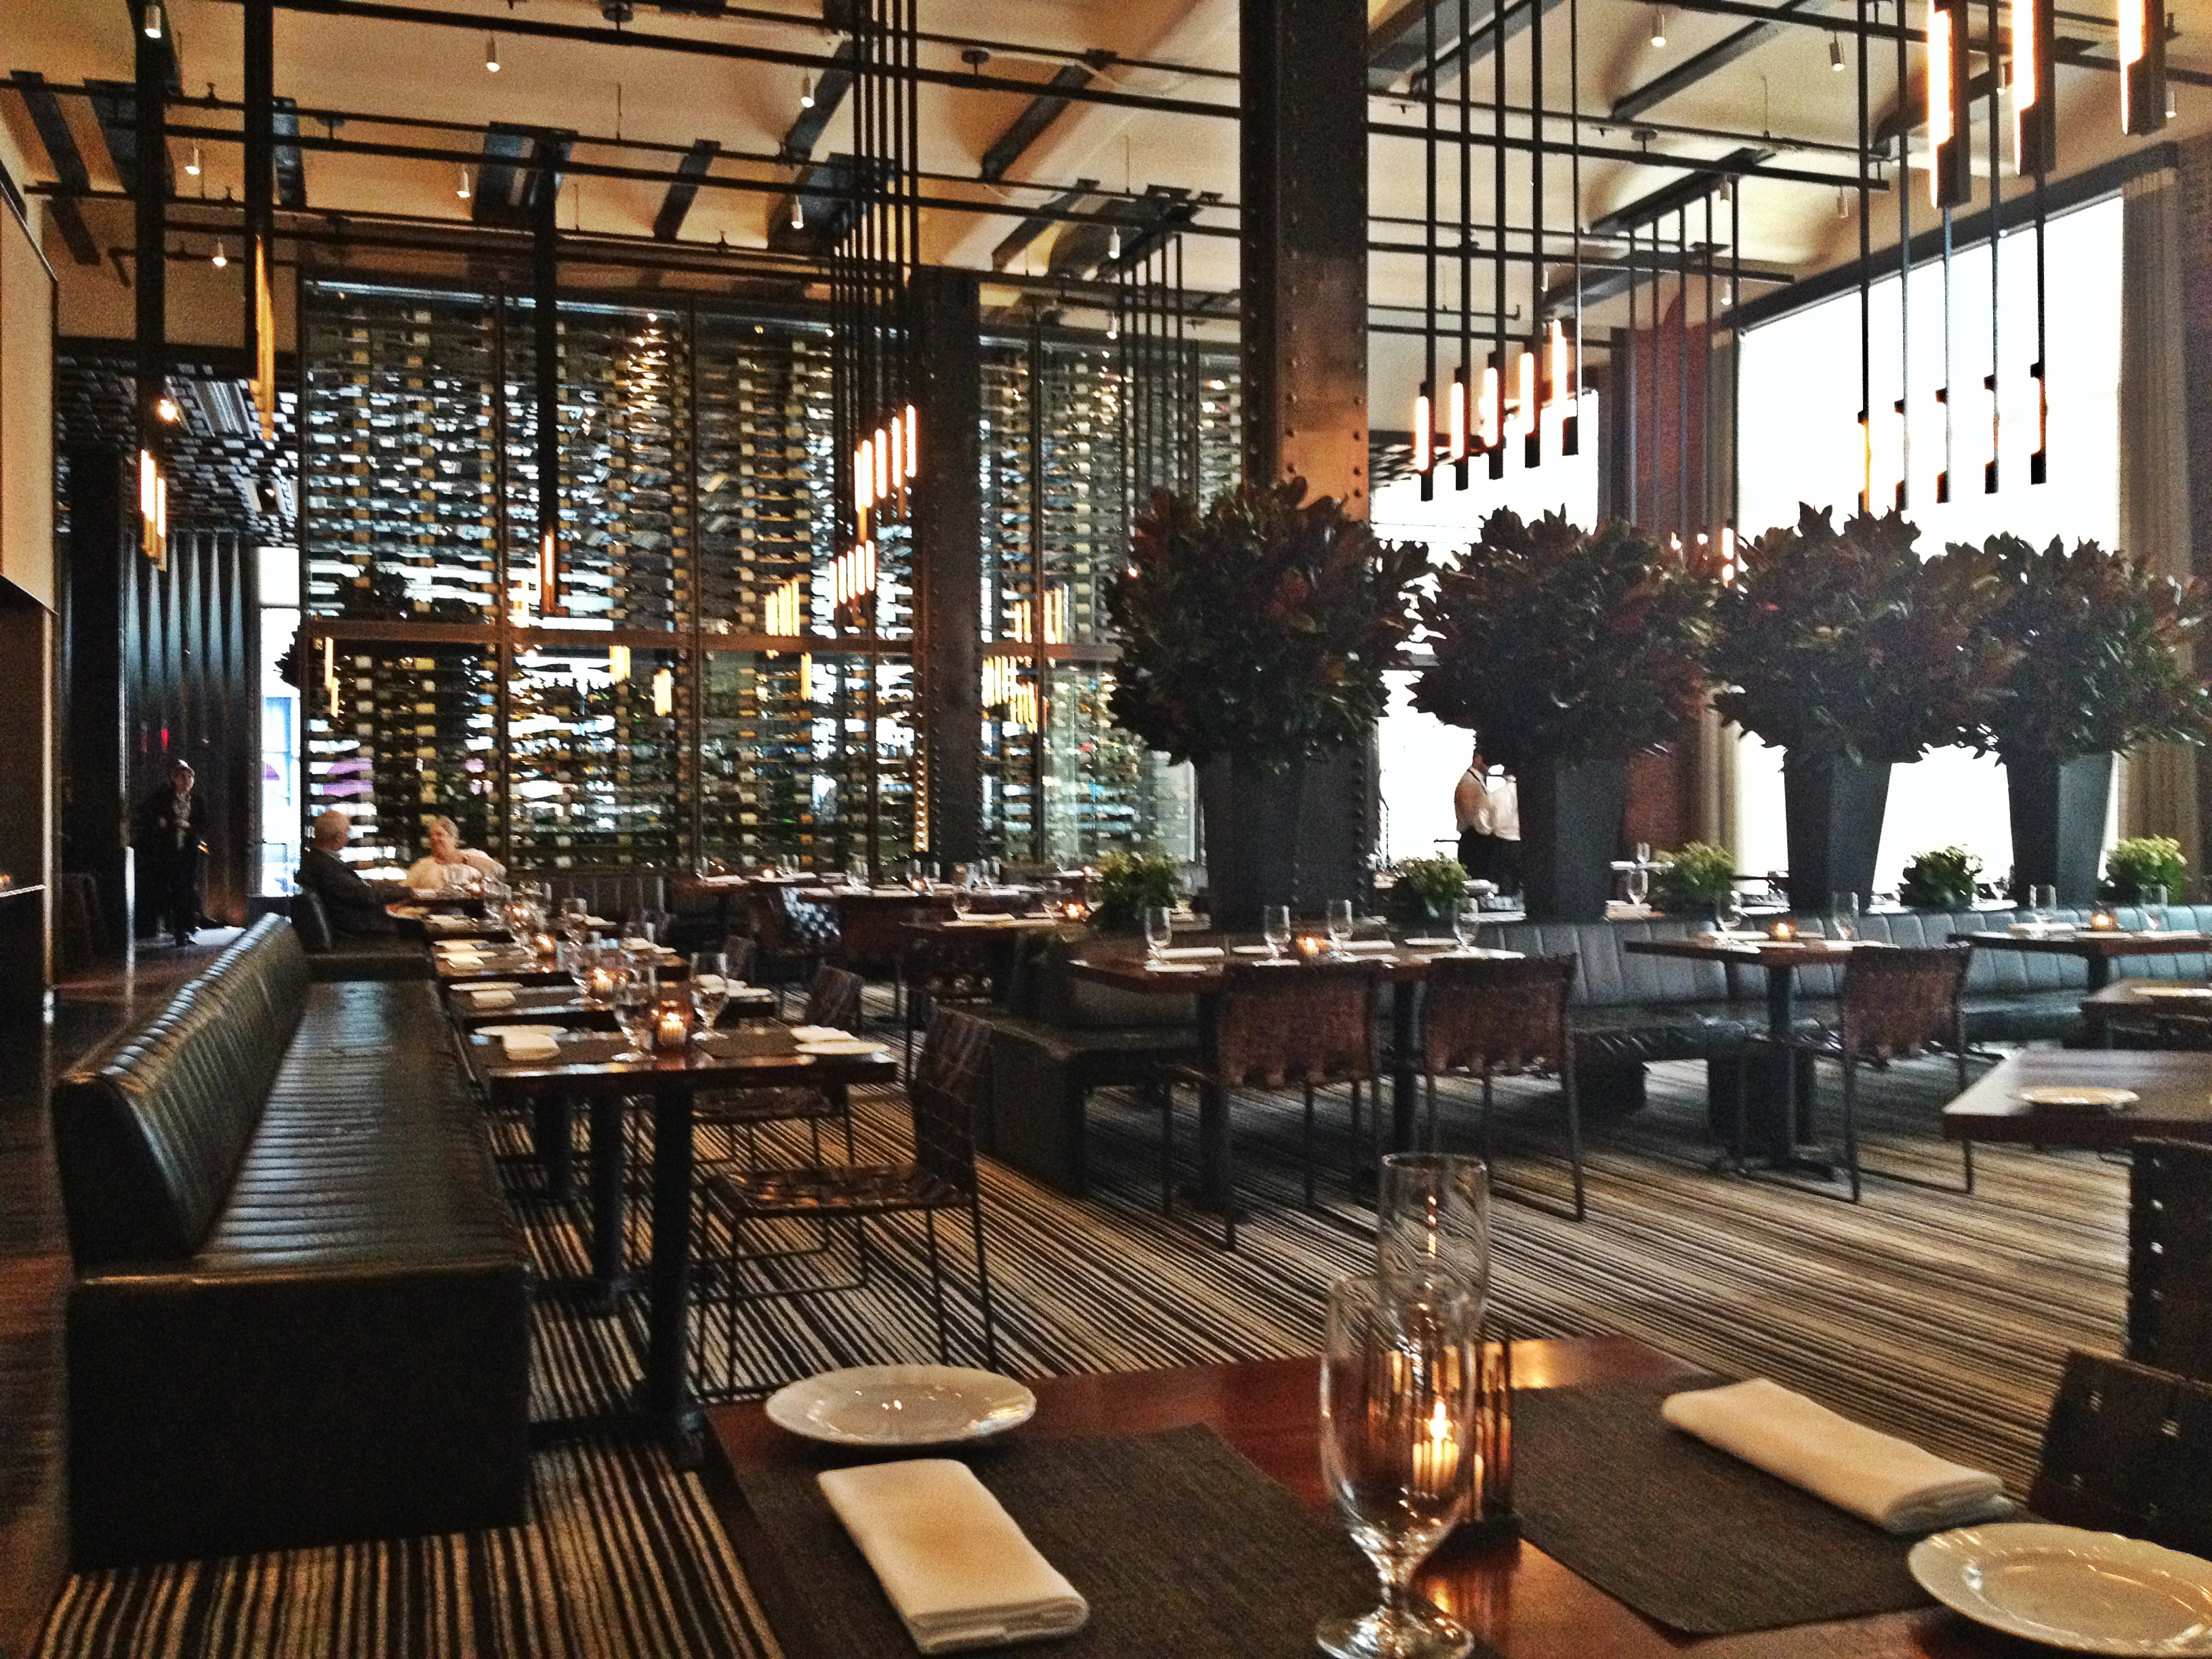 Dinner at Colicchio and Sons | World Curious Traveler